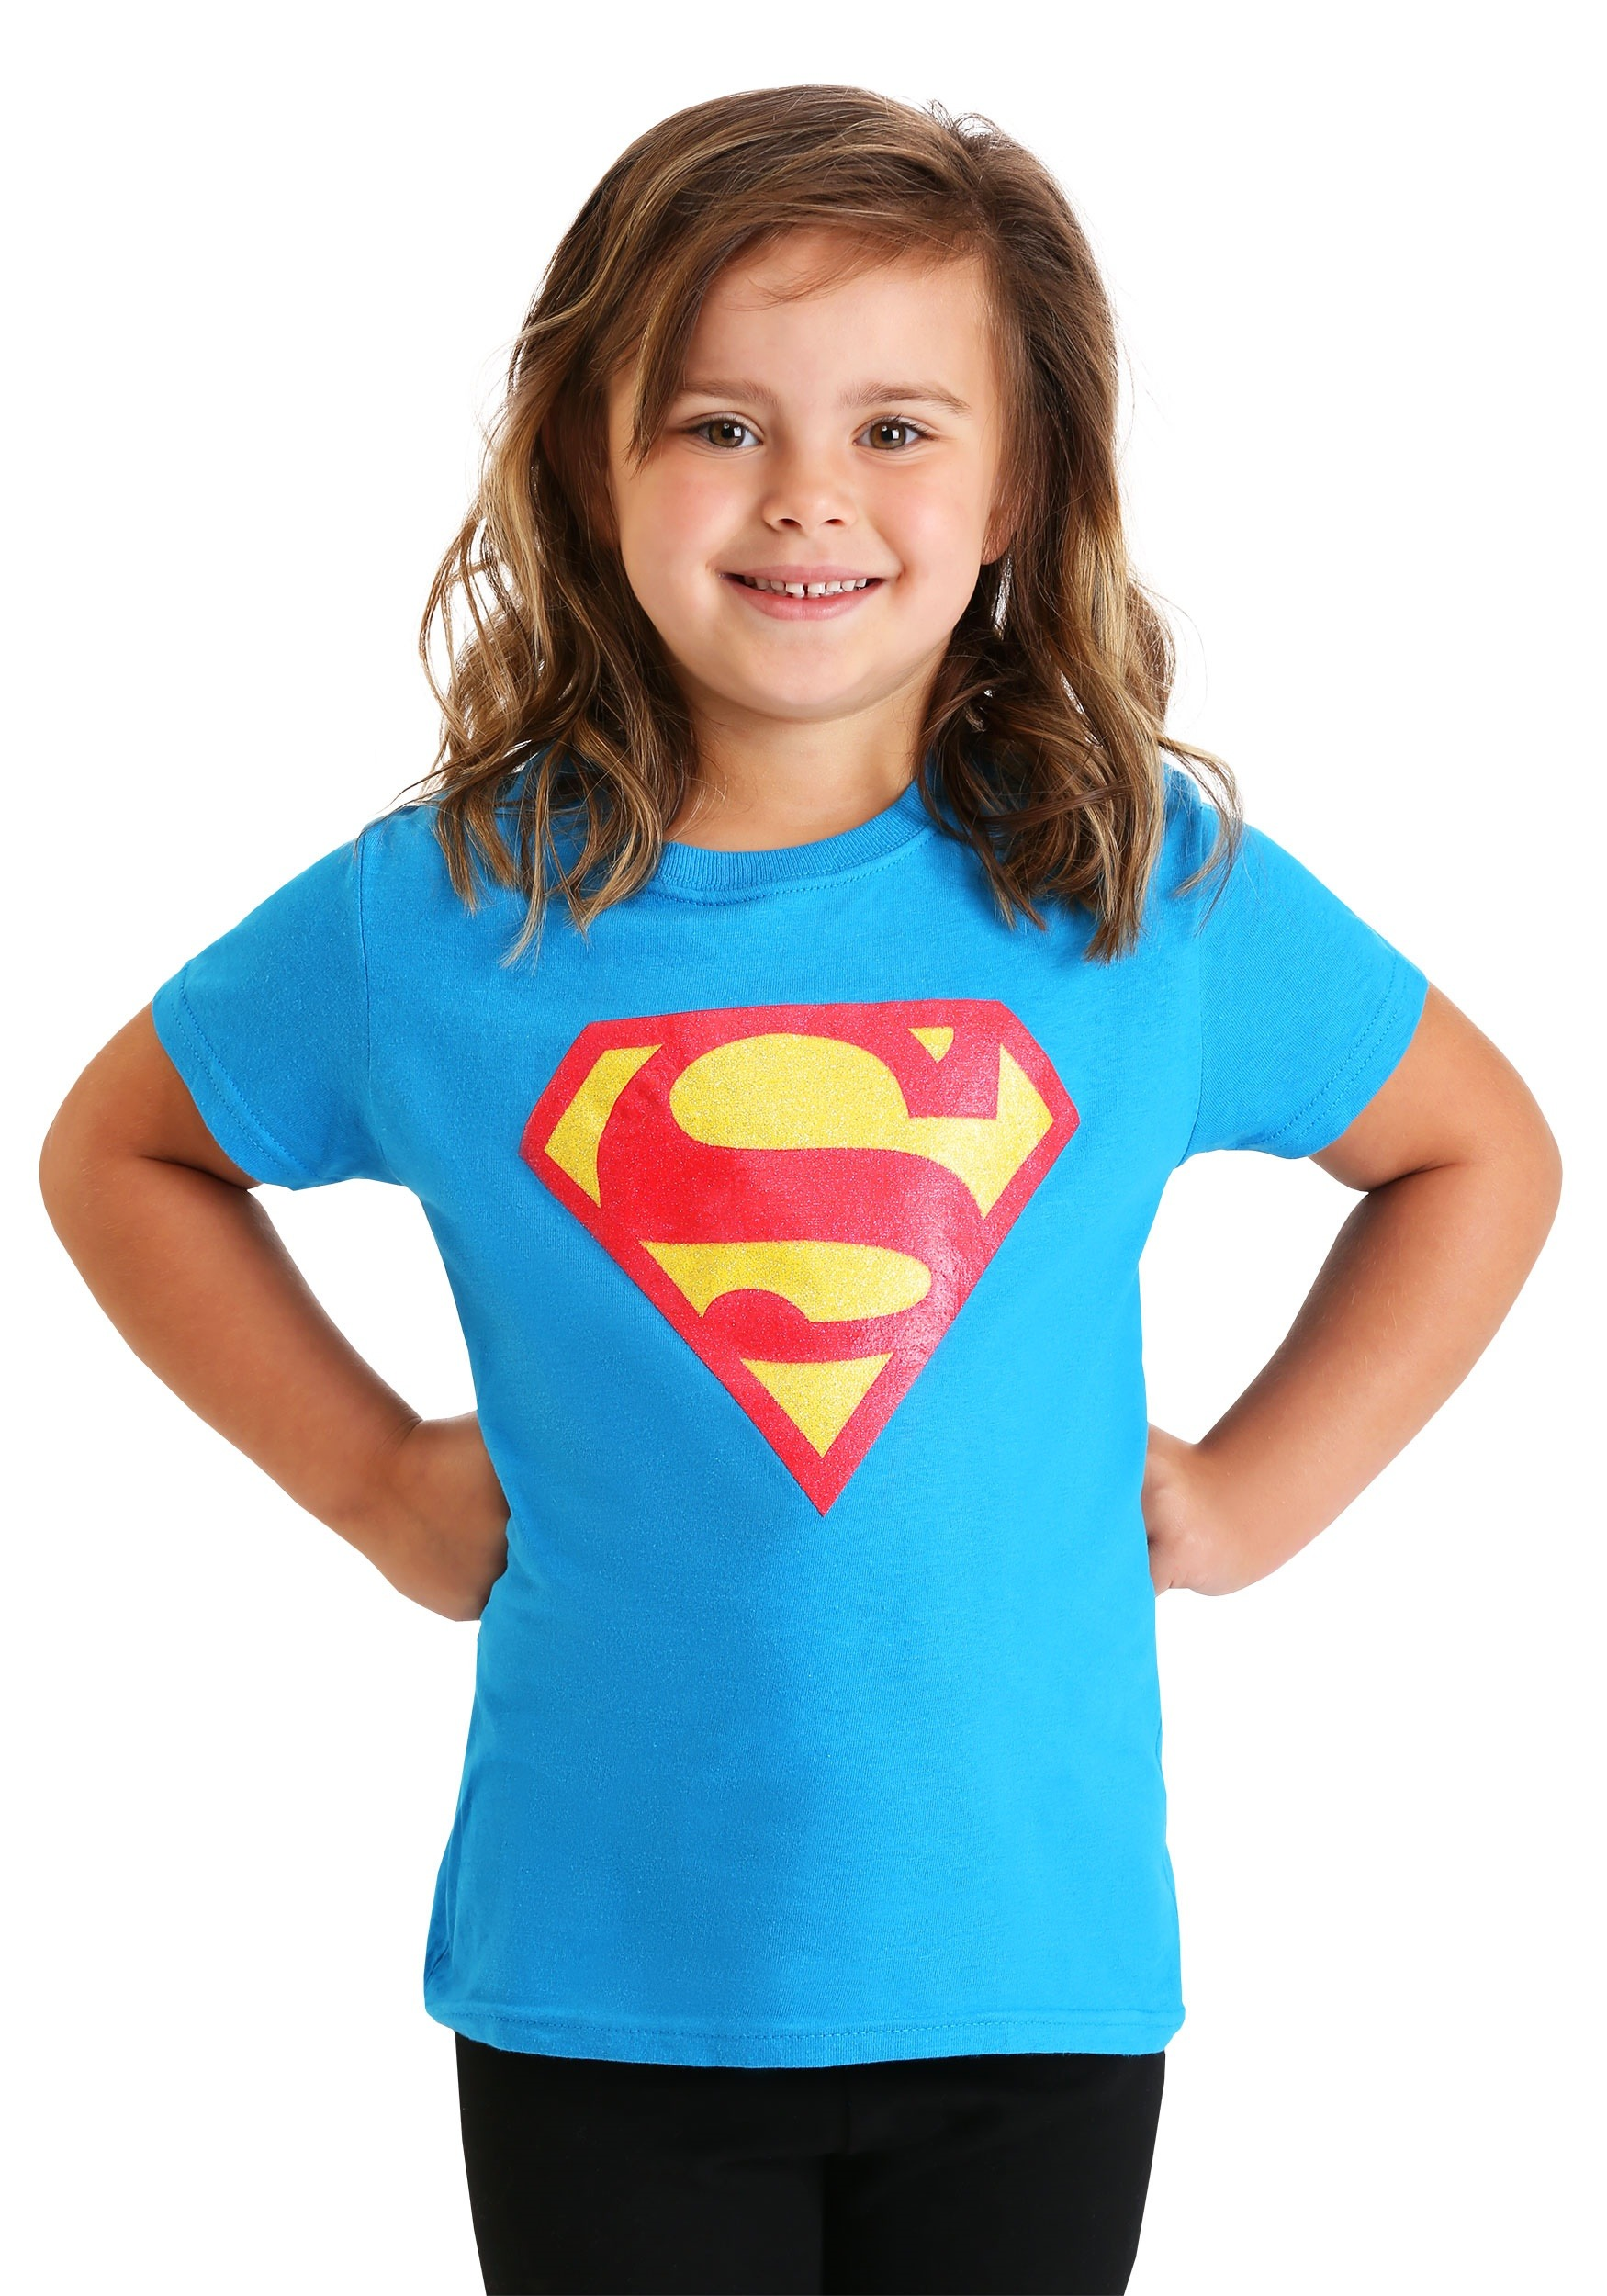 c20bec7031ec4 Plus Size Superman T Shirts - BCD Tofu House